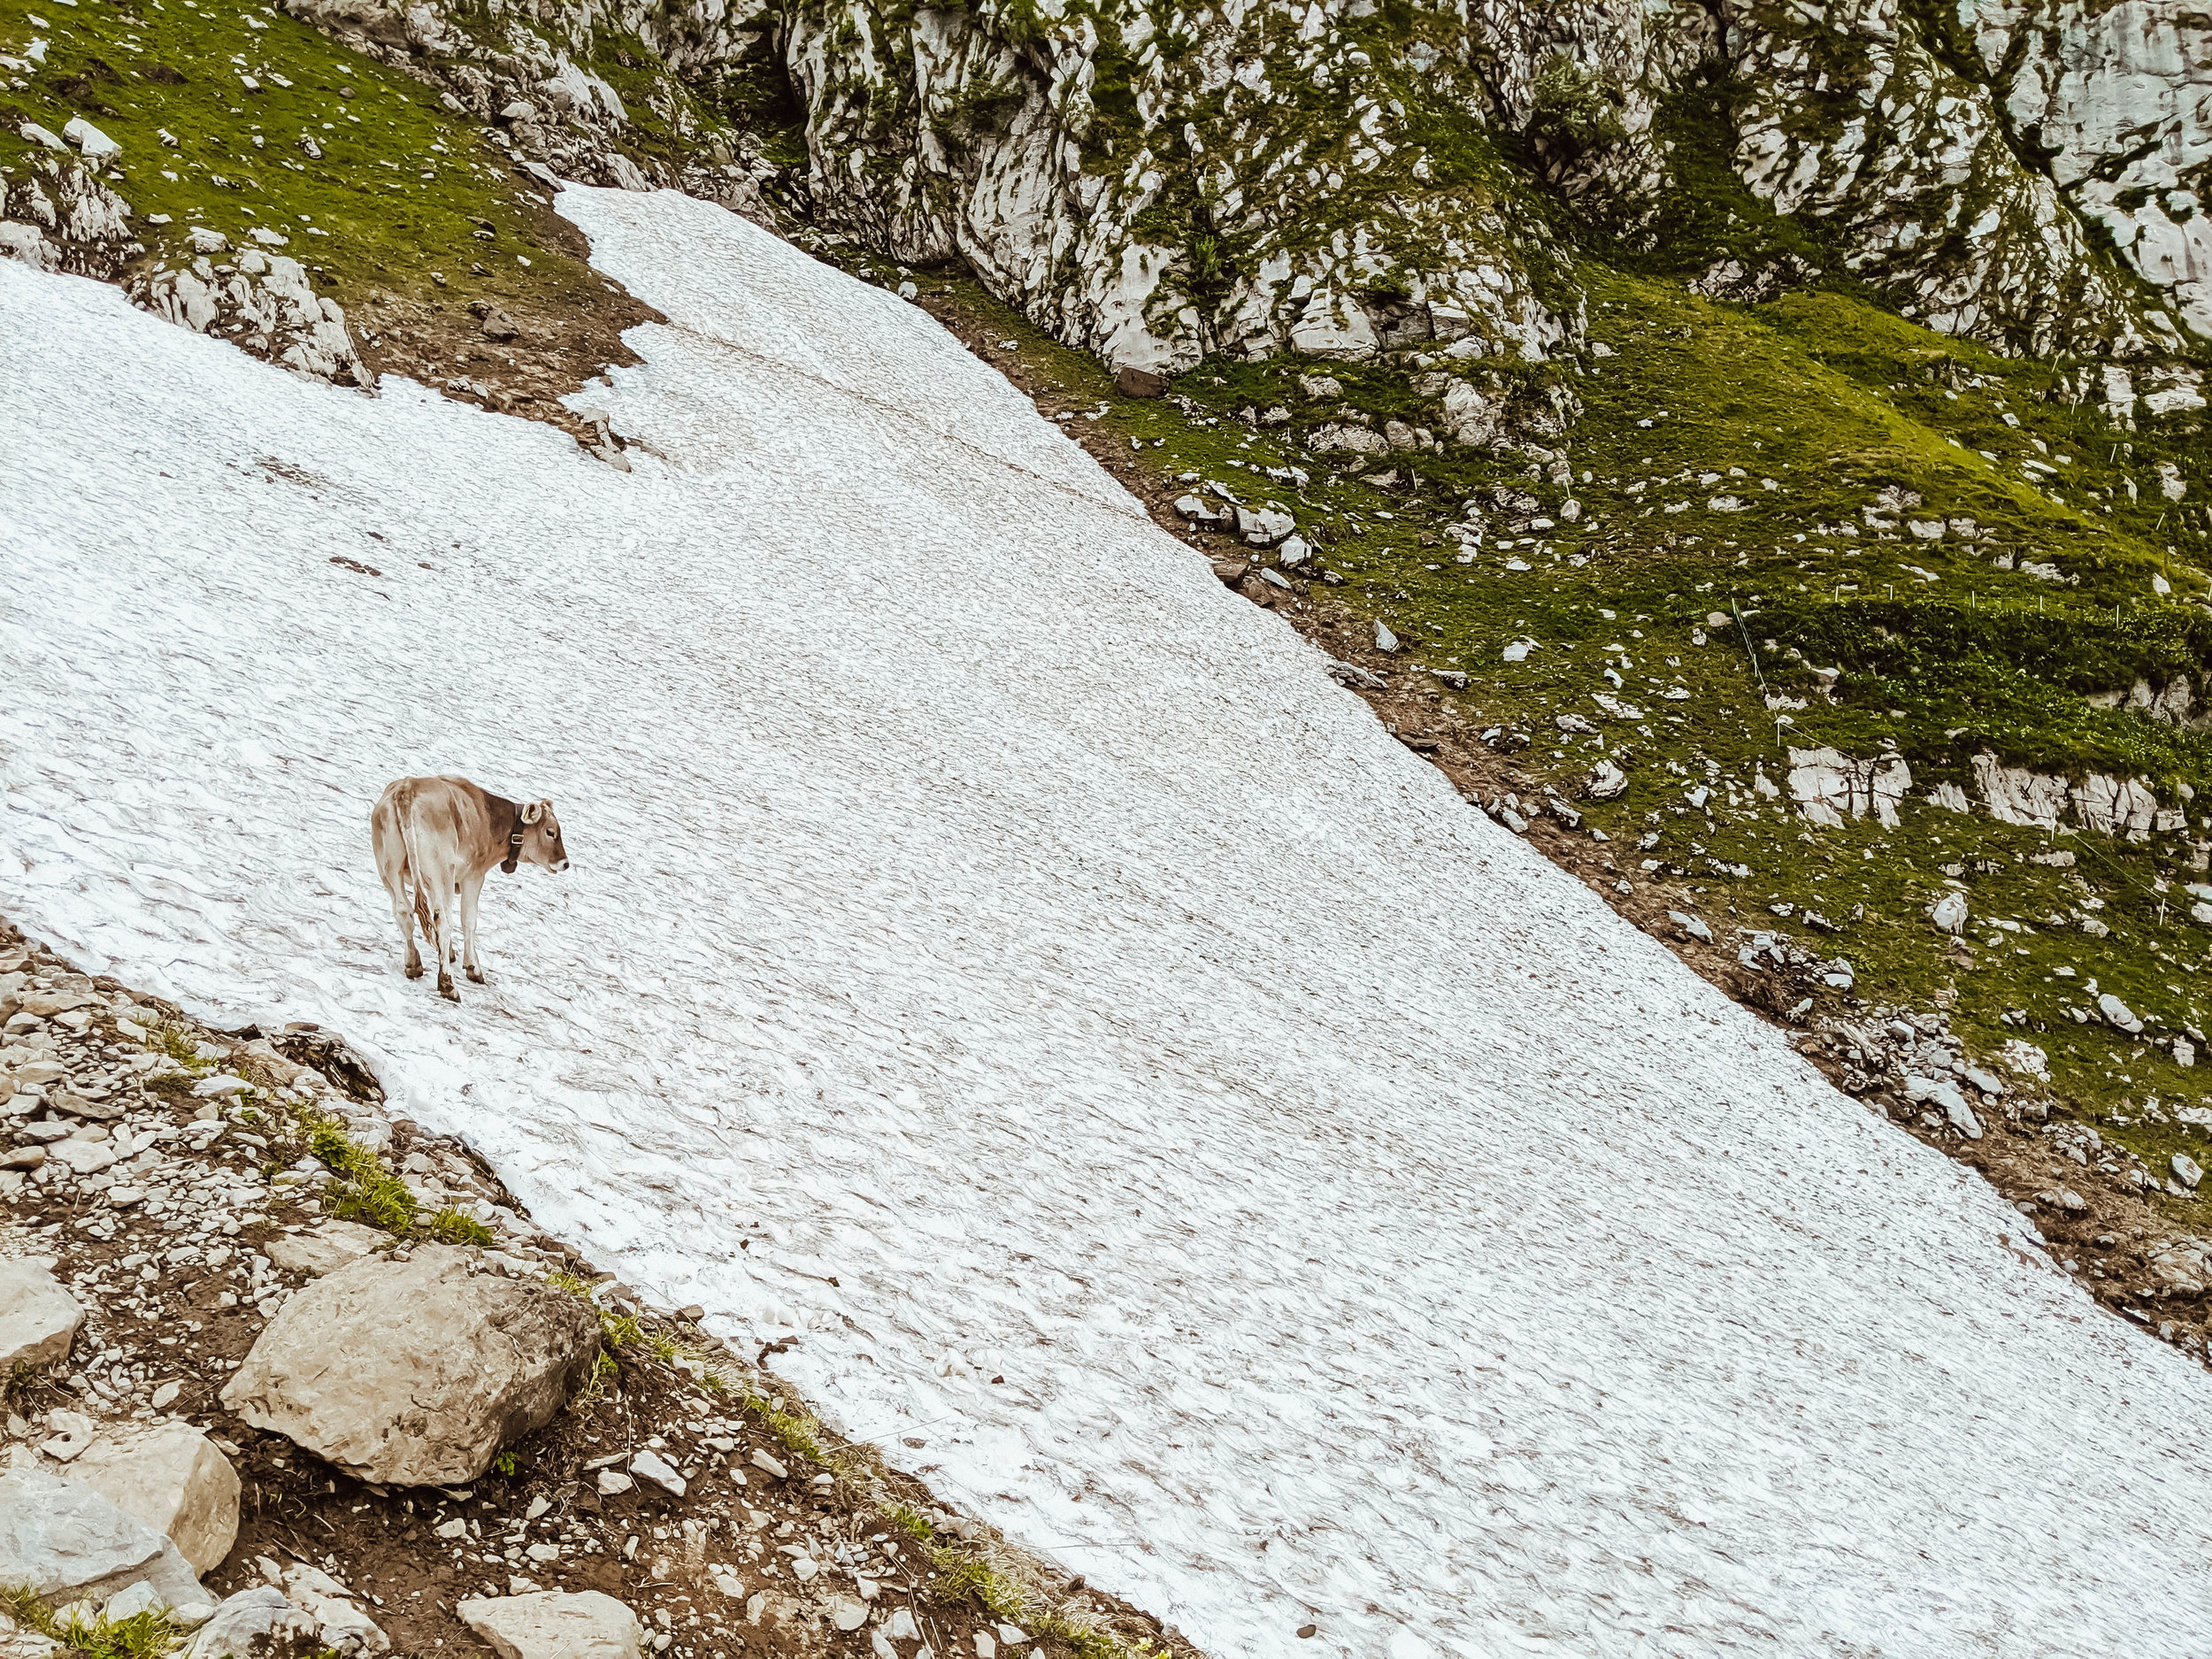 Cow on snow in Appenzell.jpg